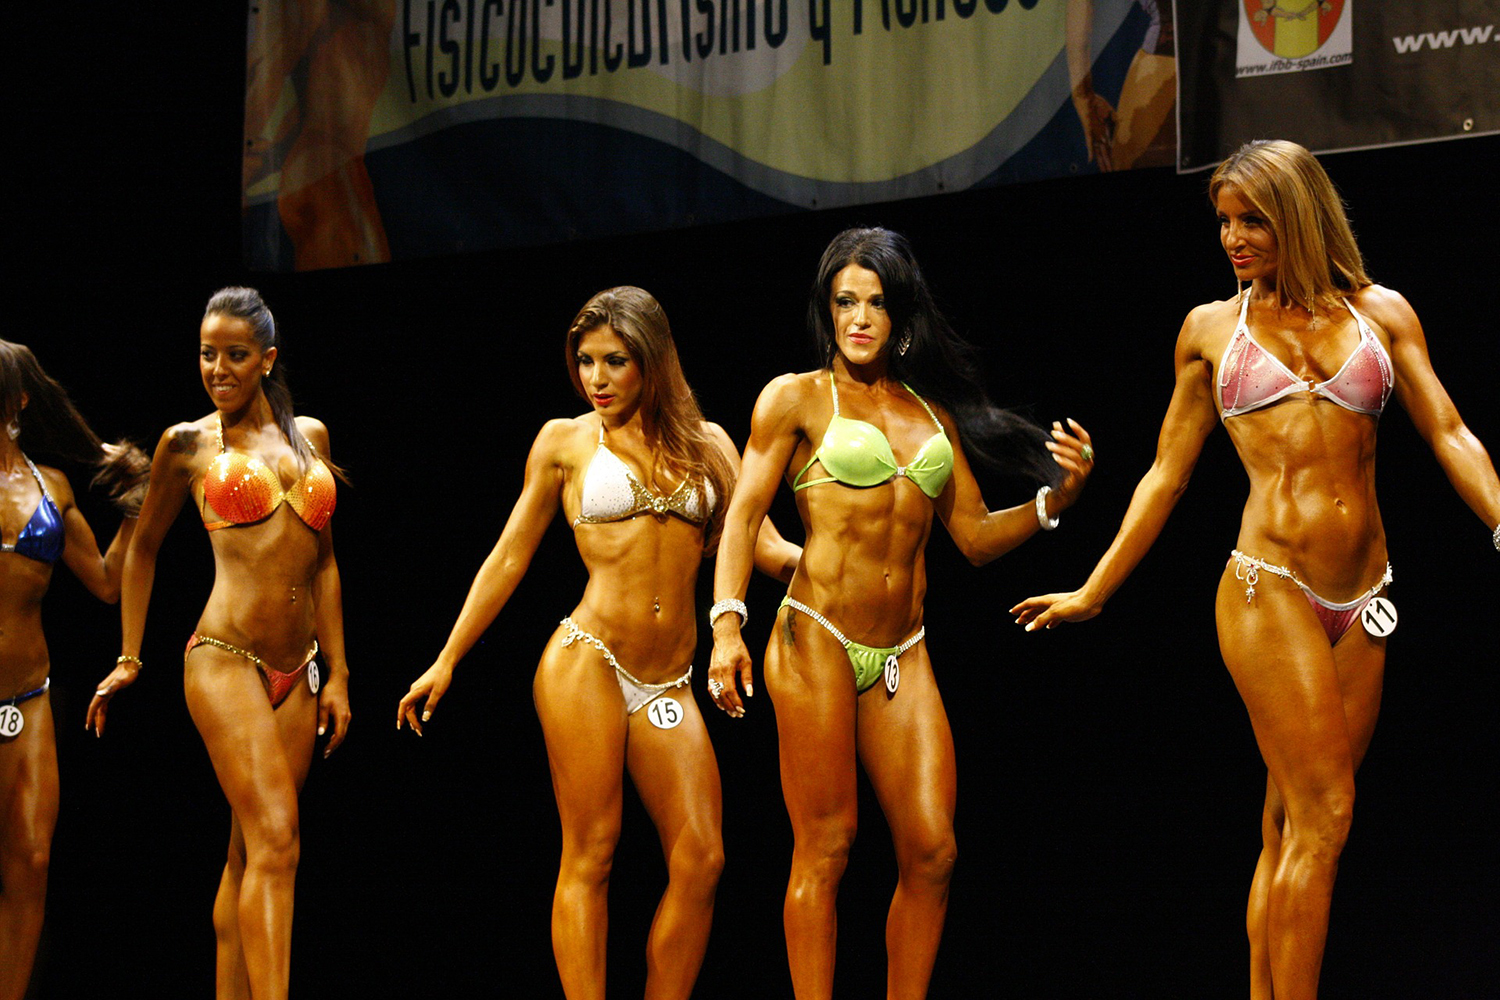 Muscular Female Bodybuilders on Stage